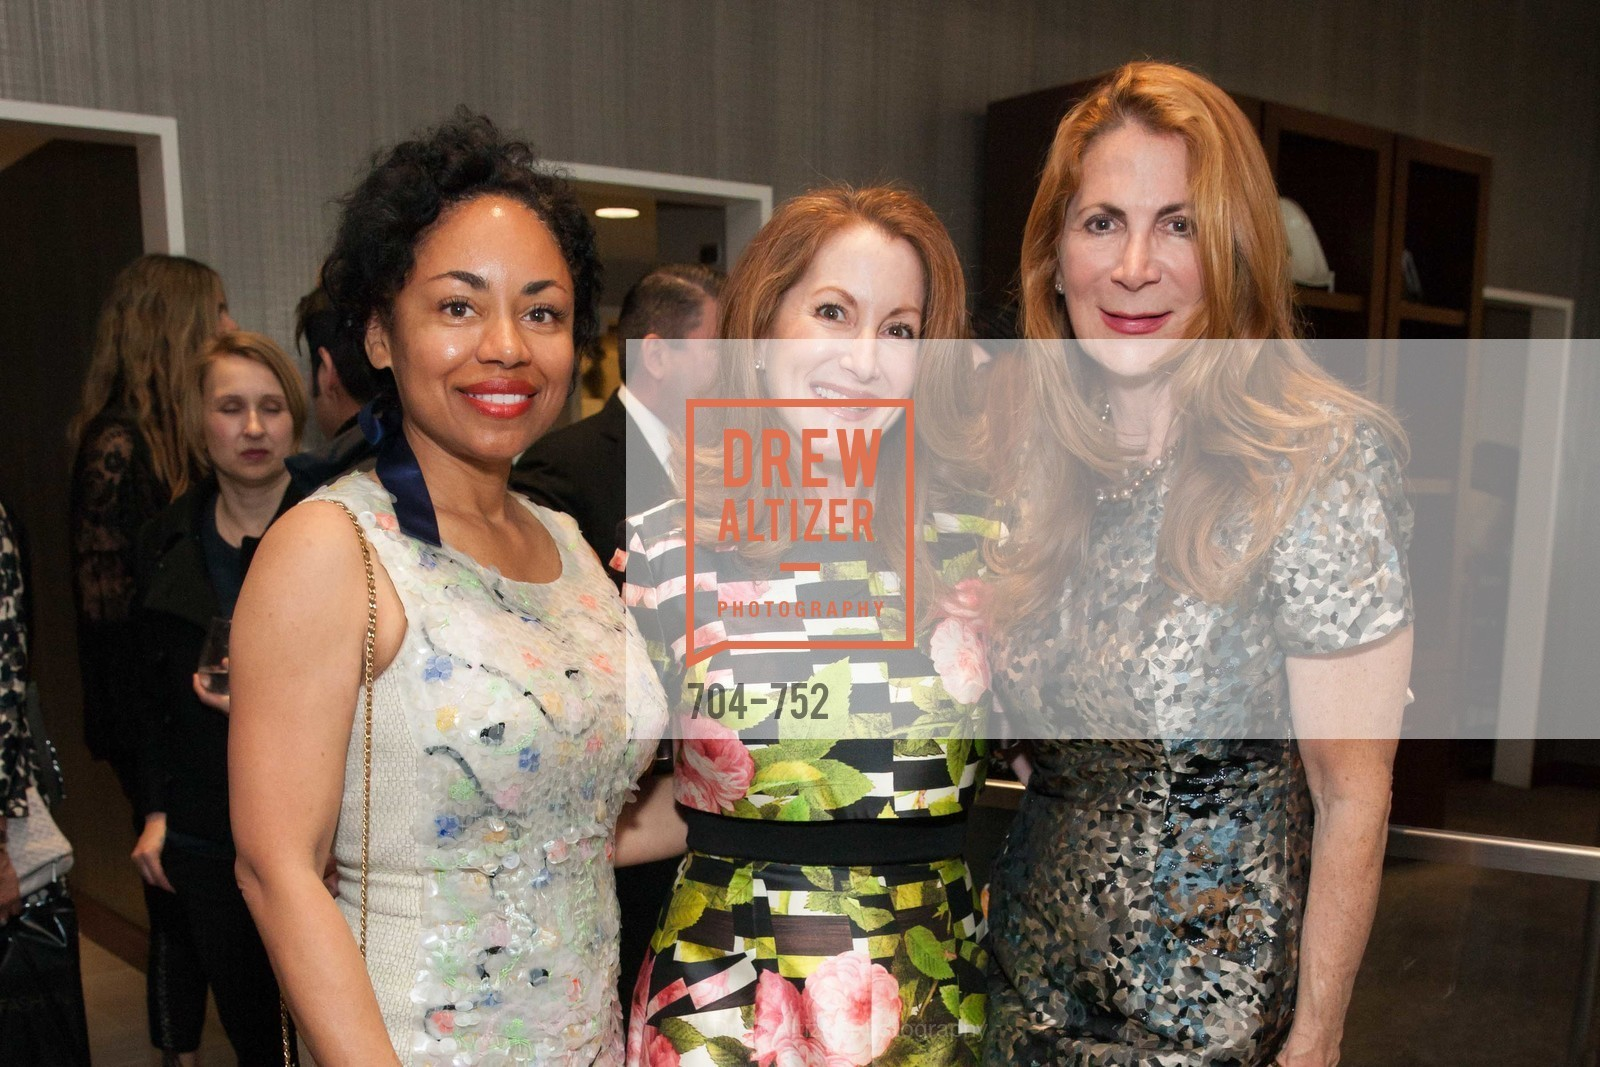 Paula Schultz, Ave Seltsam, Patricia Ferrin Loucks, Electric Fashion Book Signing with Christine Suppes & Ken Downing at THE ROTUNDA, NEIMAN MARCUS, US, May 27th, 2015,Drew Altizer, Drew Altizer Photography, full-service agency, private events, San Francisco photographer, photographer california